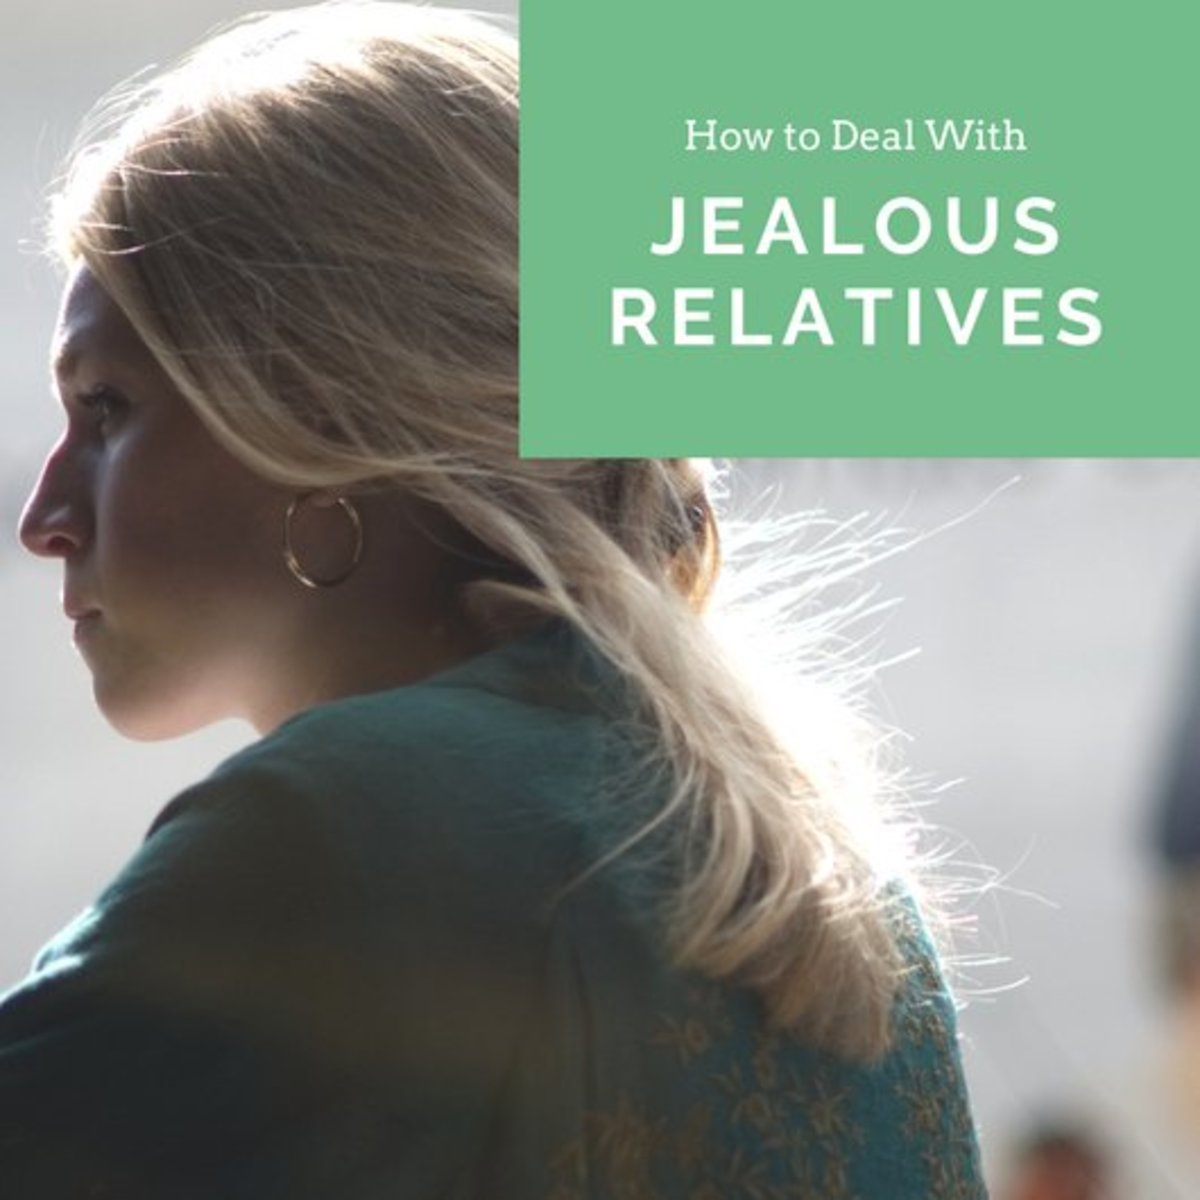 Jealous family members can drain you emotionally and make you feel bad about yourself.